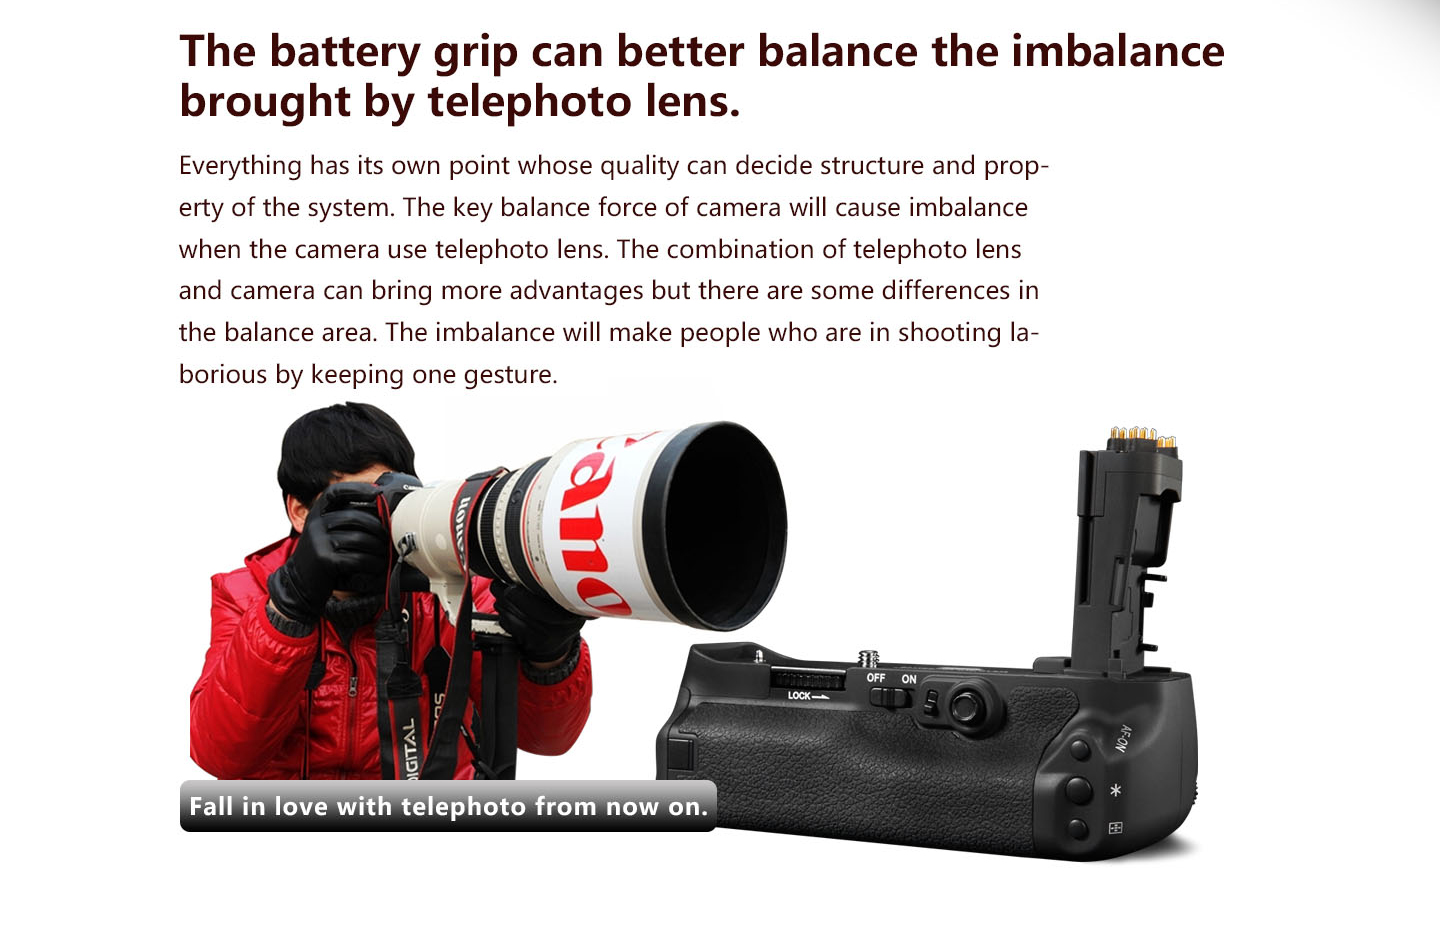 The battery grip can better balance the imbalance brought by telephoto lens